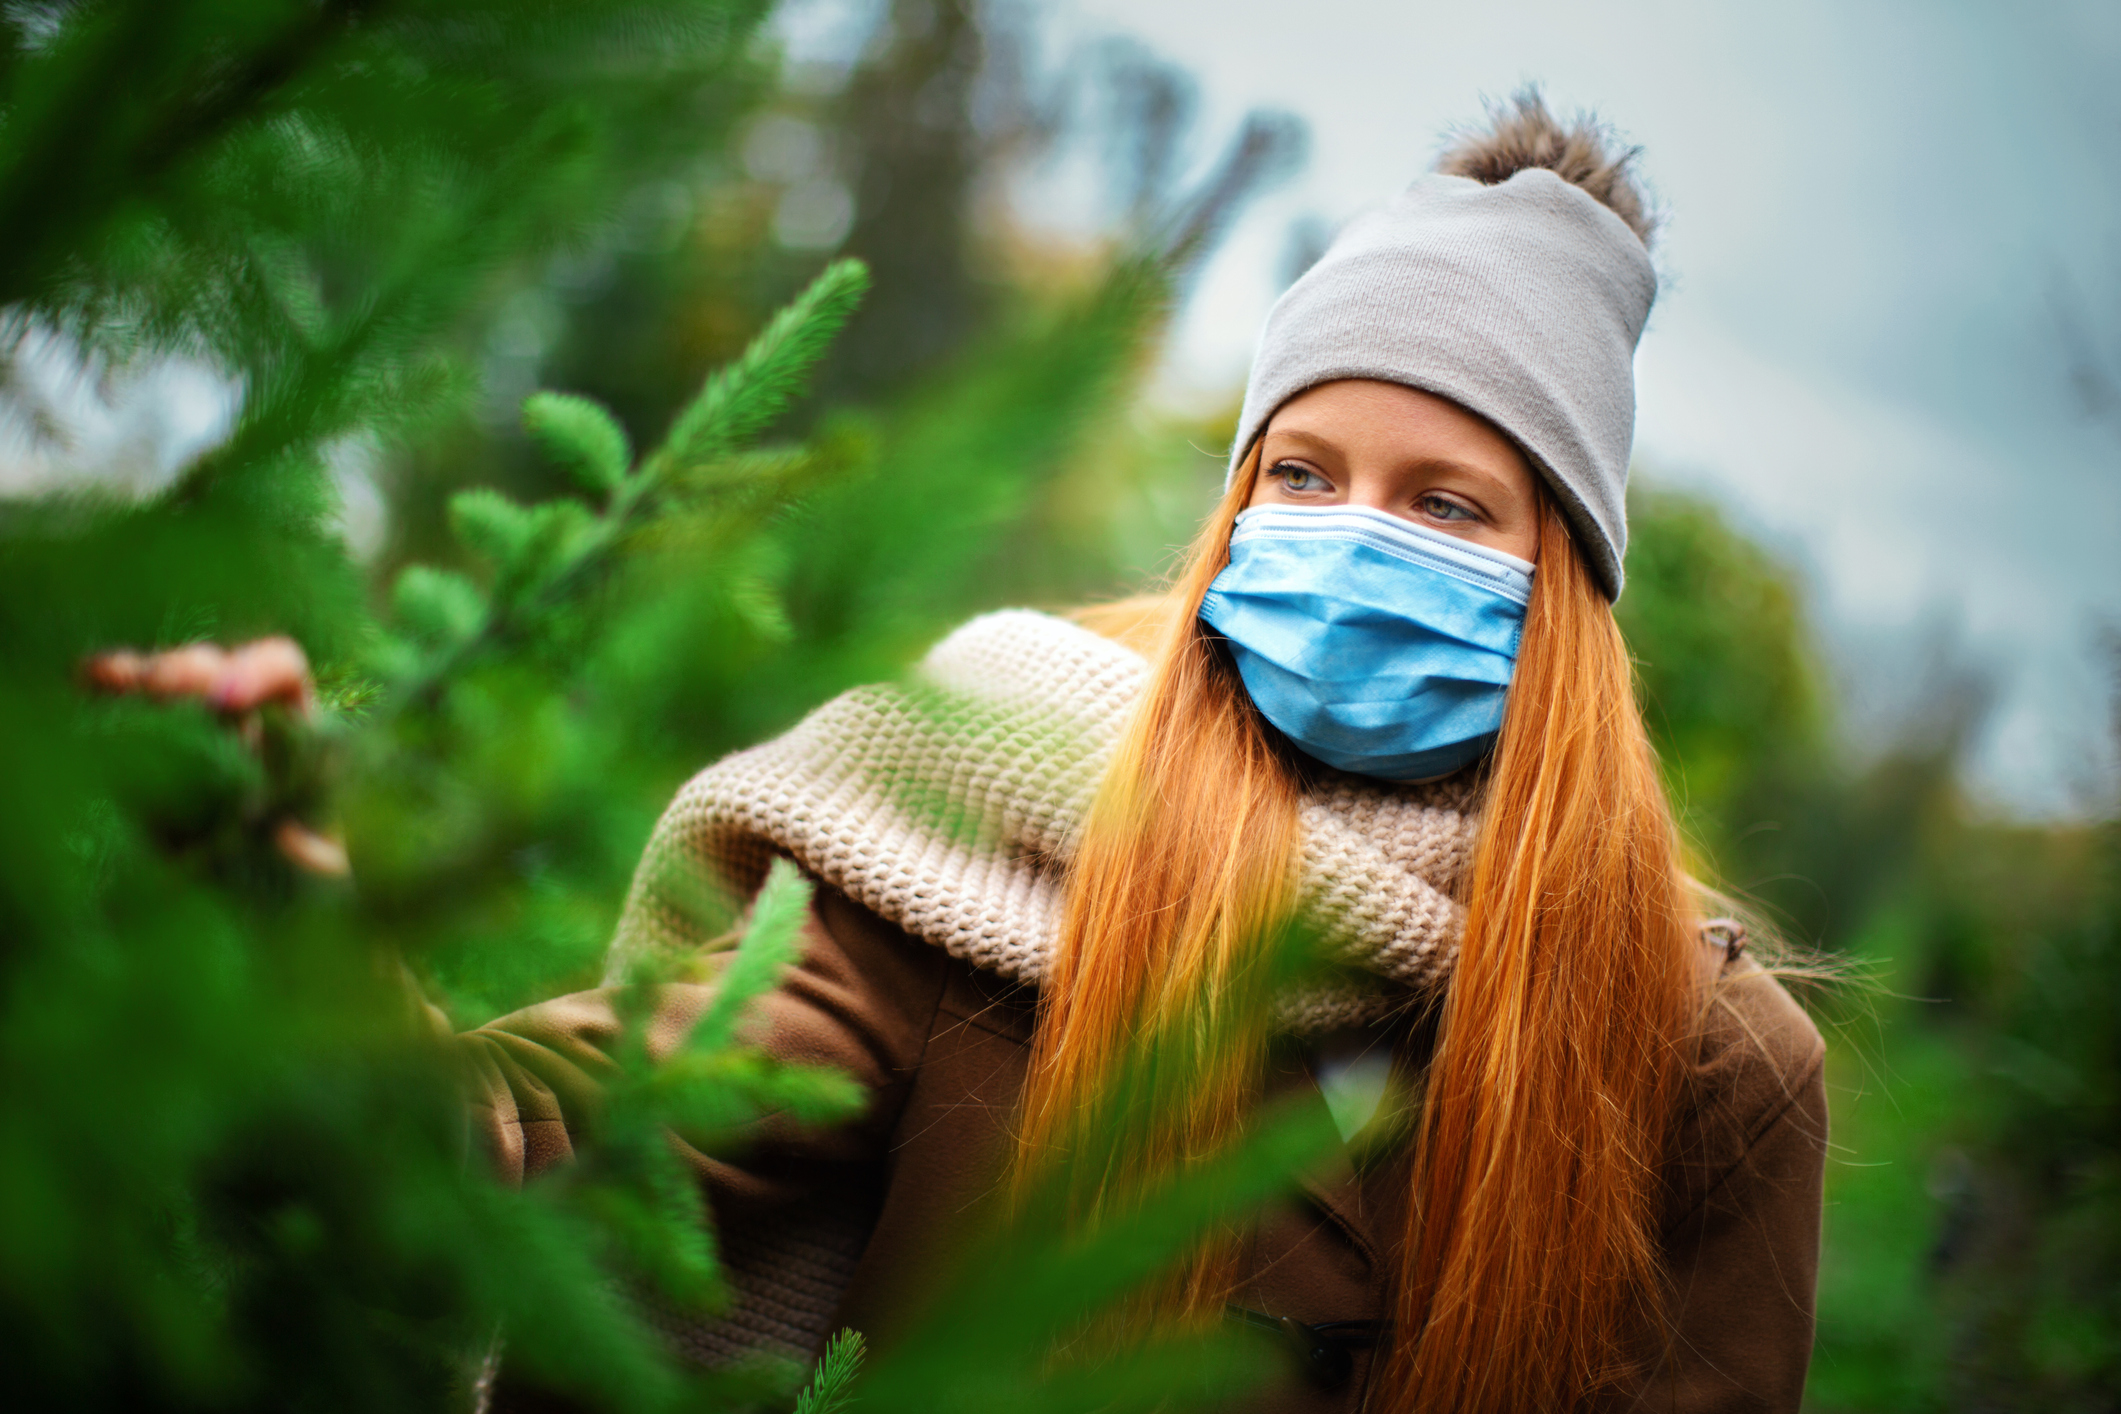 Christmas Tree Shopping Amidst a Global Pandemic: What to Expect